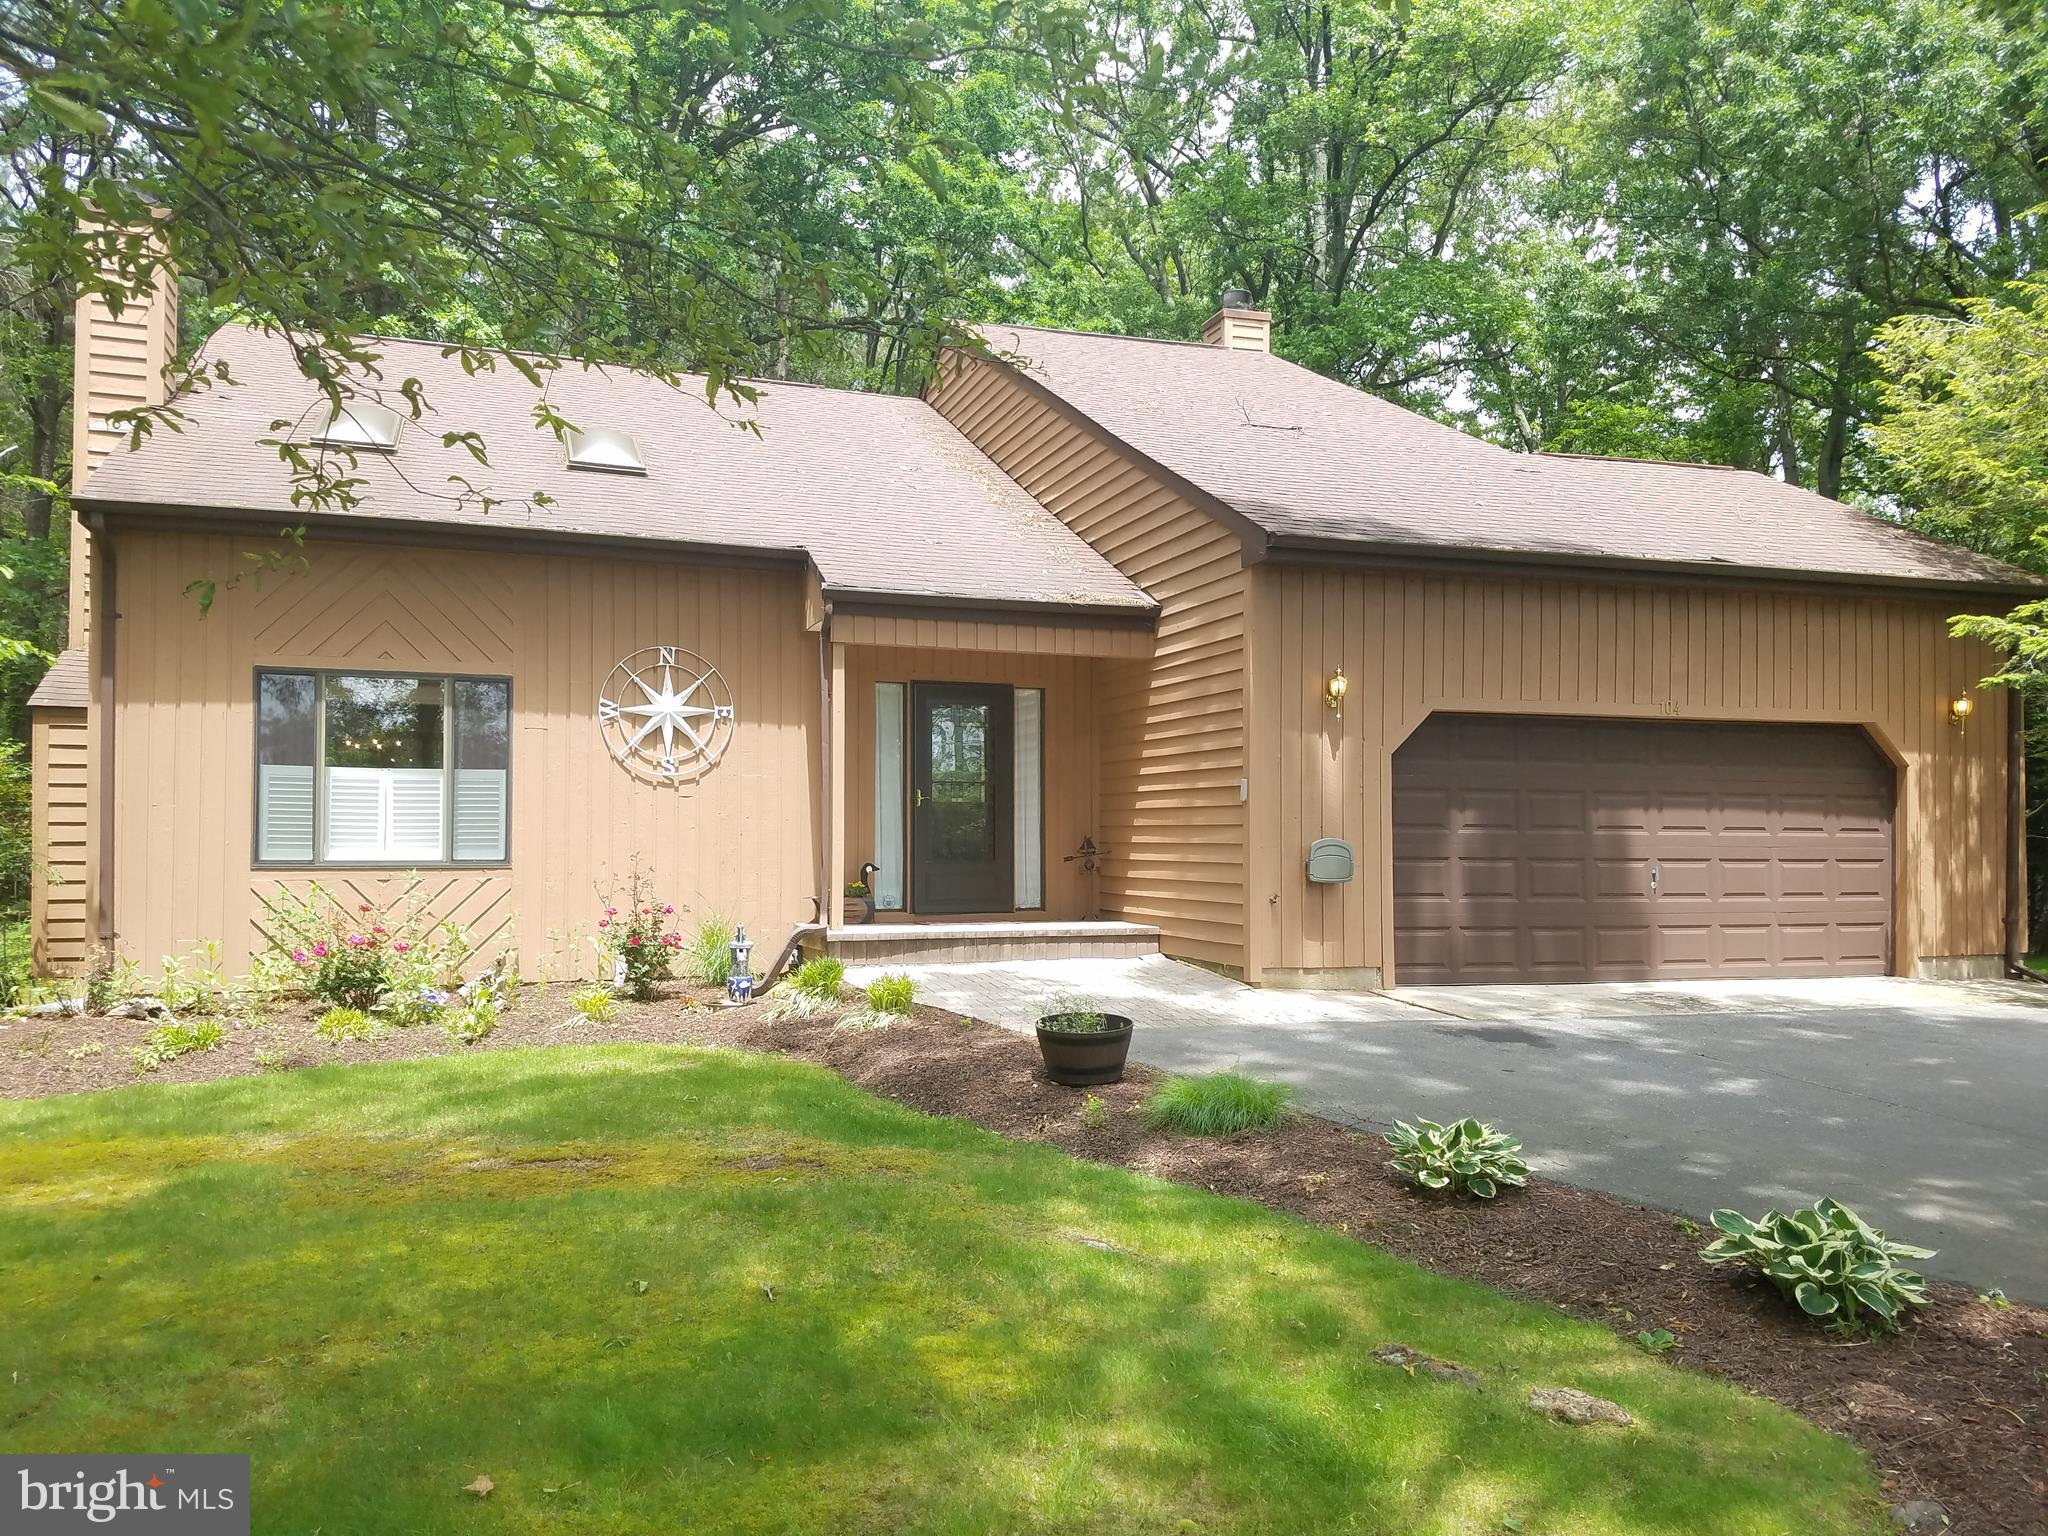 Coastal Contemporary, 2,000 sq. ft. home on private 1/2 acre beautifully landscaped level lot.    Th